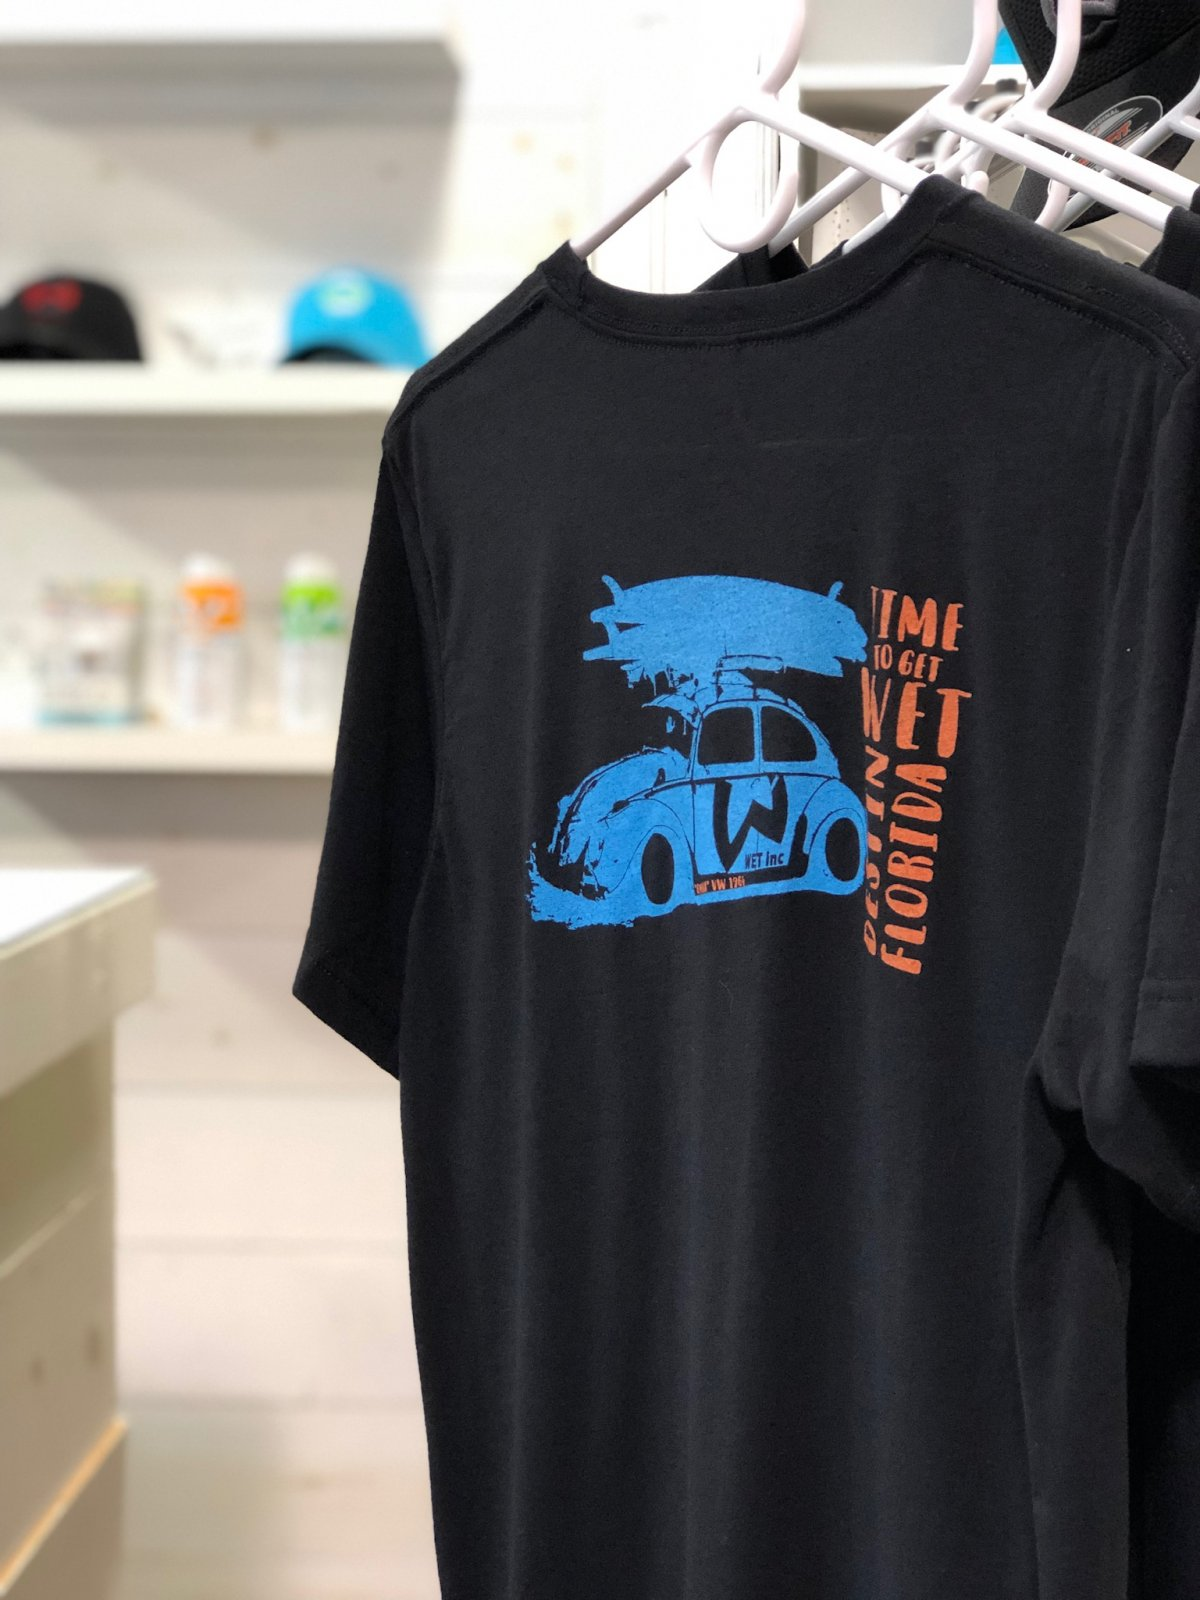 WET - Time To Get WET VW Beetle Tee